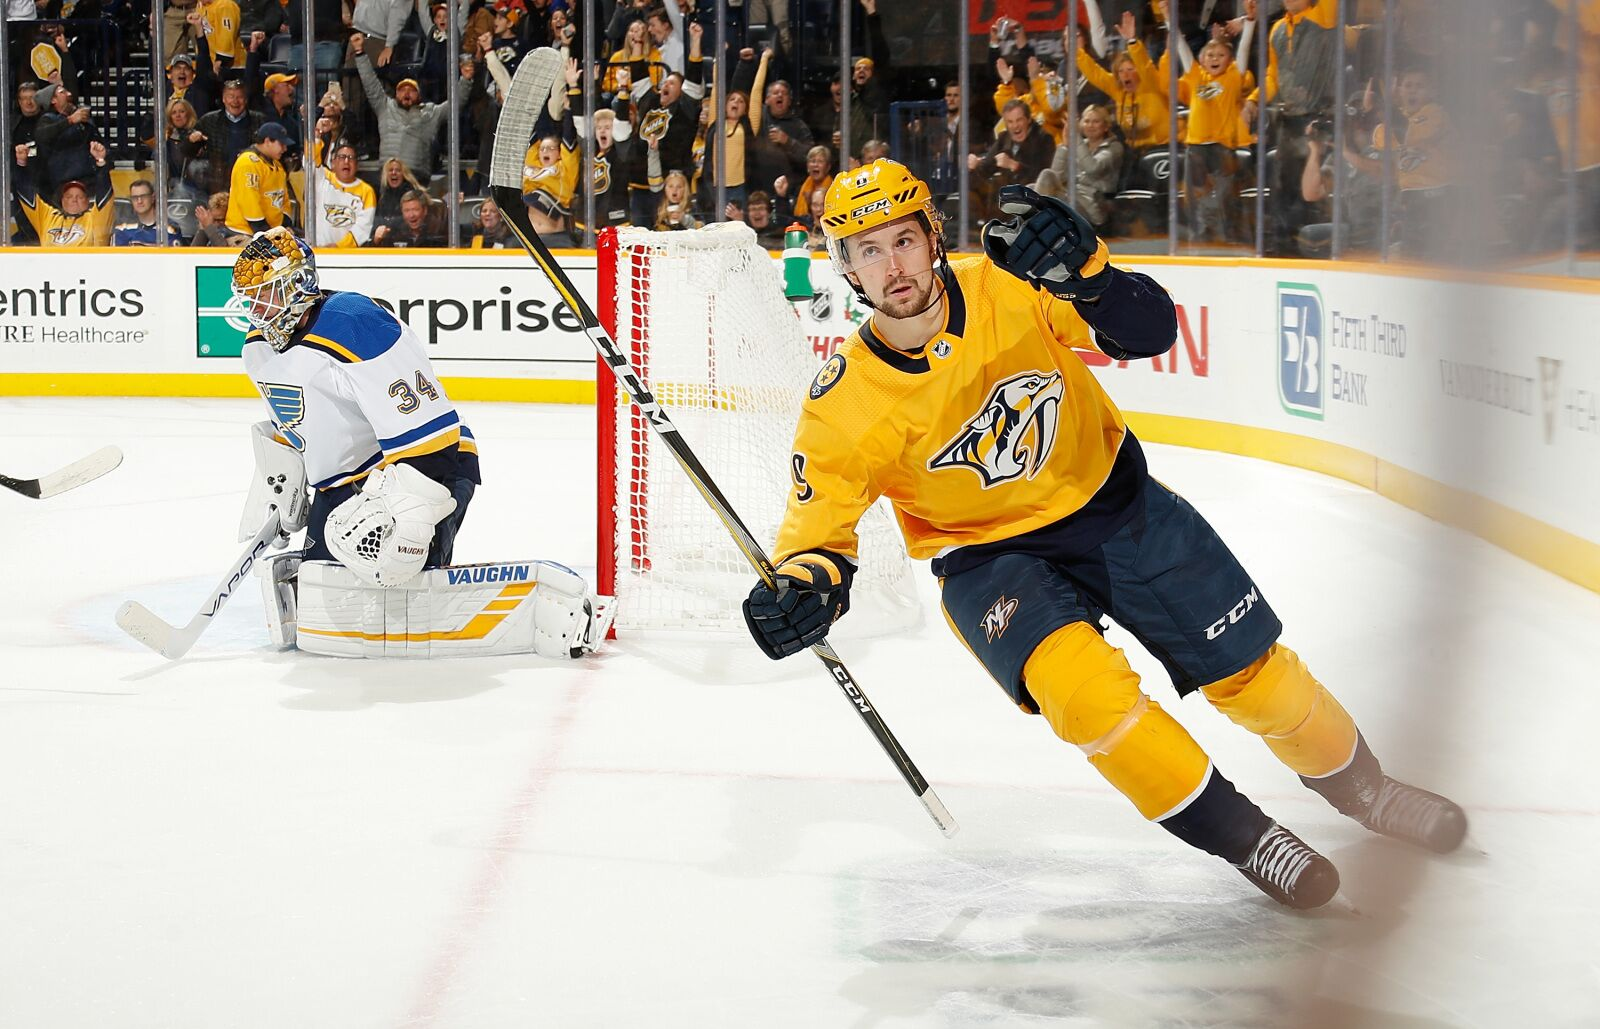 ae54de06e5a How The Nashville Predators Robbed the Washington Capitals